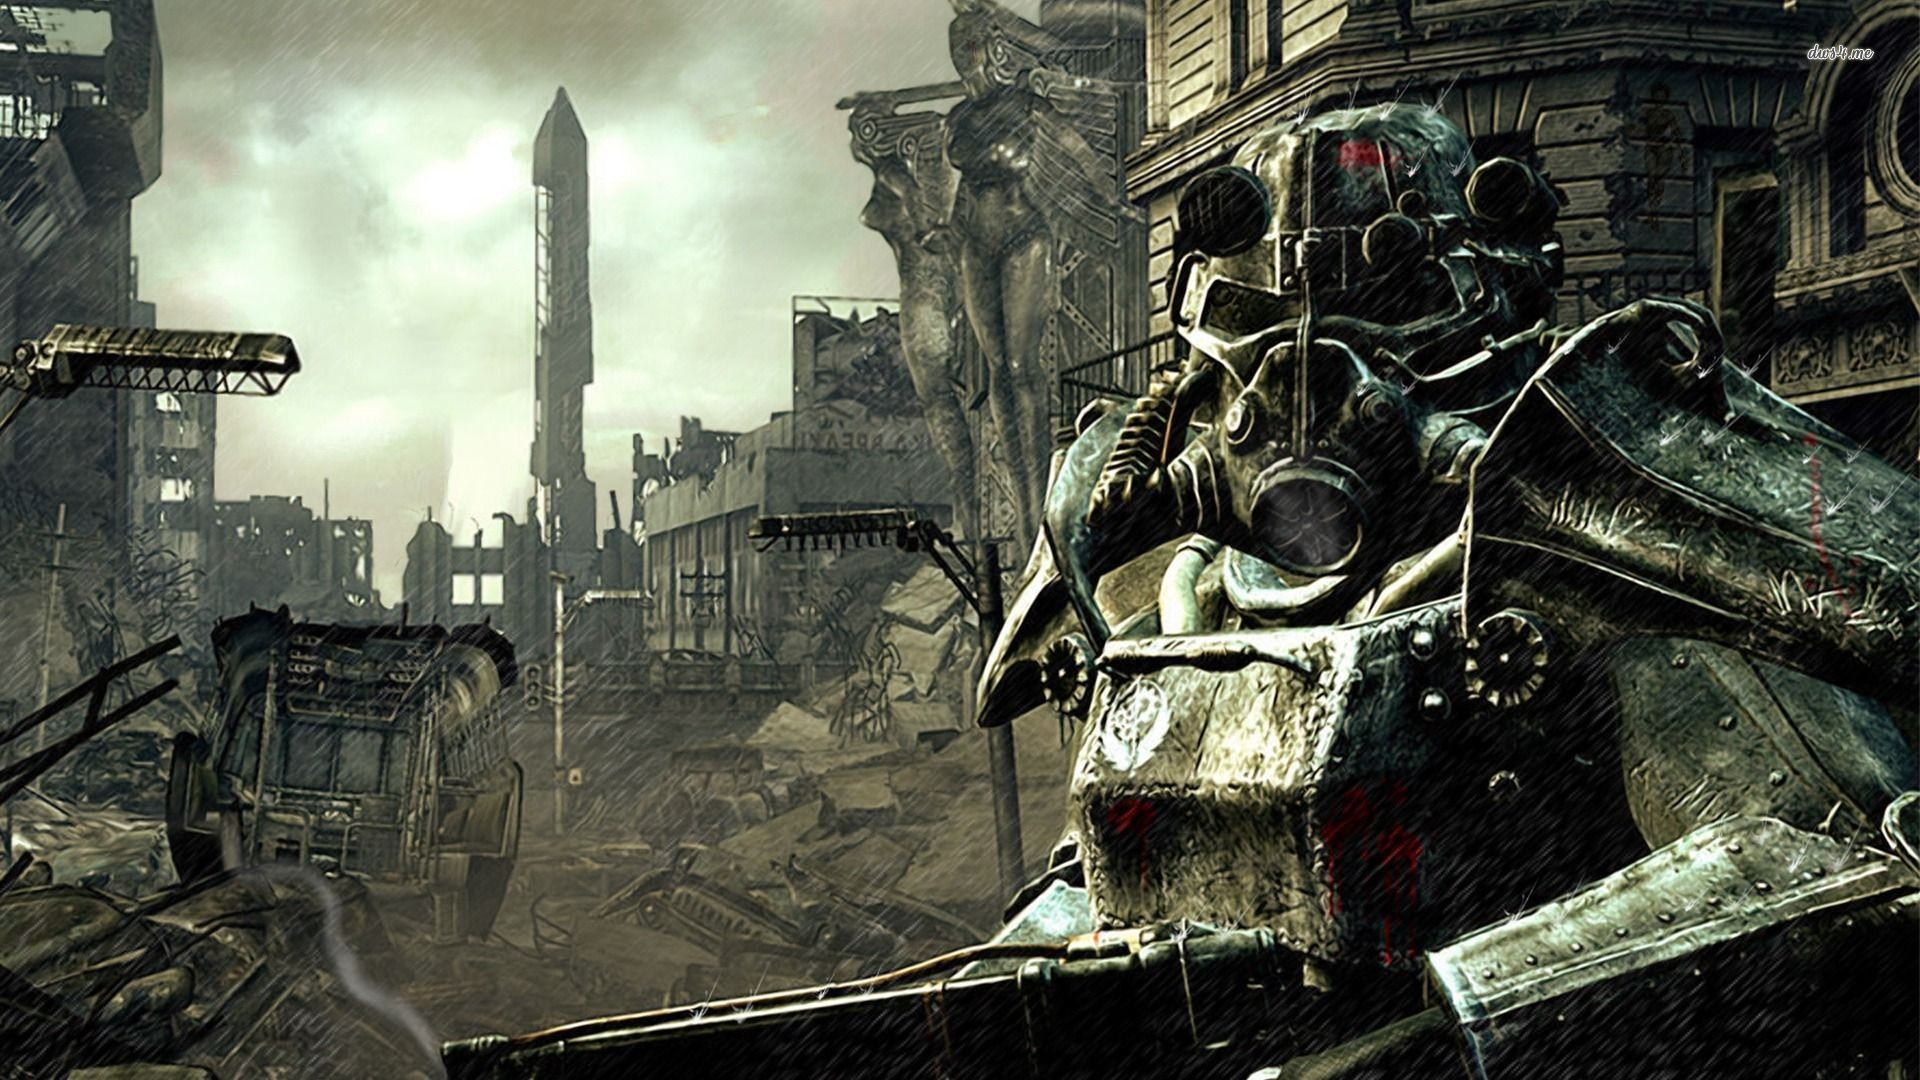 Res: 1920x1080, Fallout 3